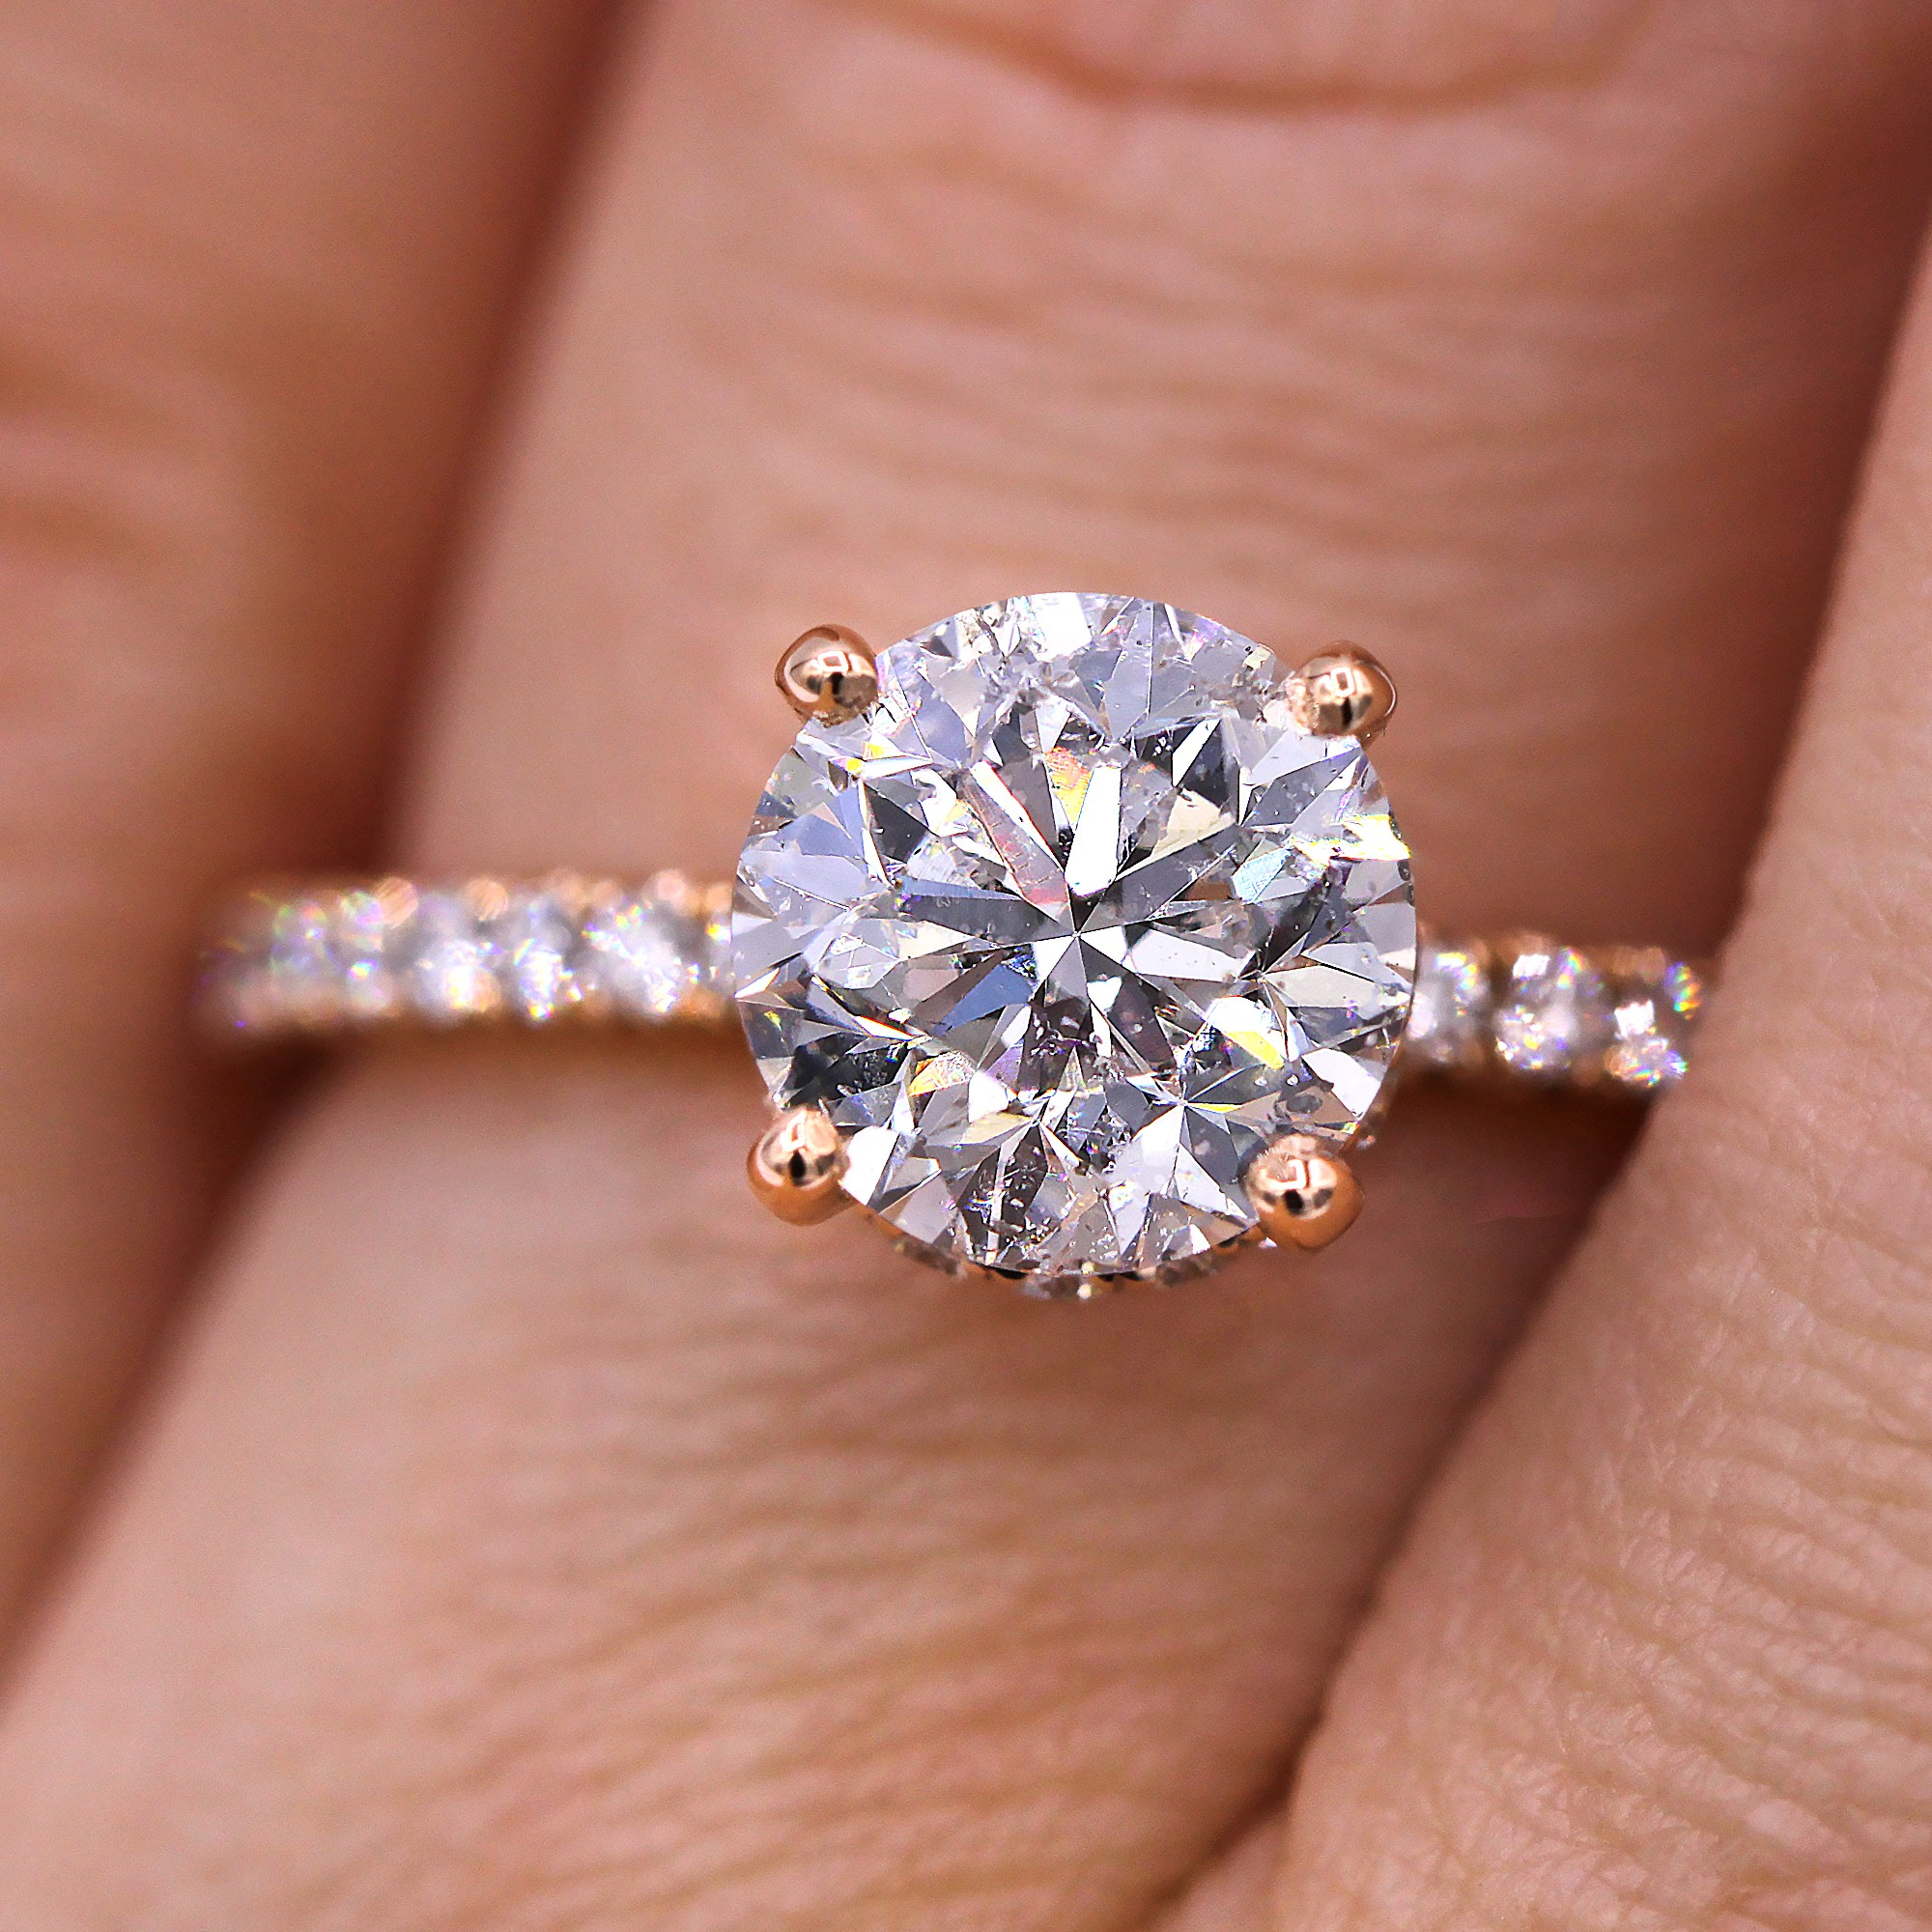 Handcrafted and Certified 2.51cts diamond engagement ring